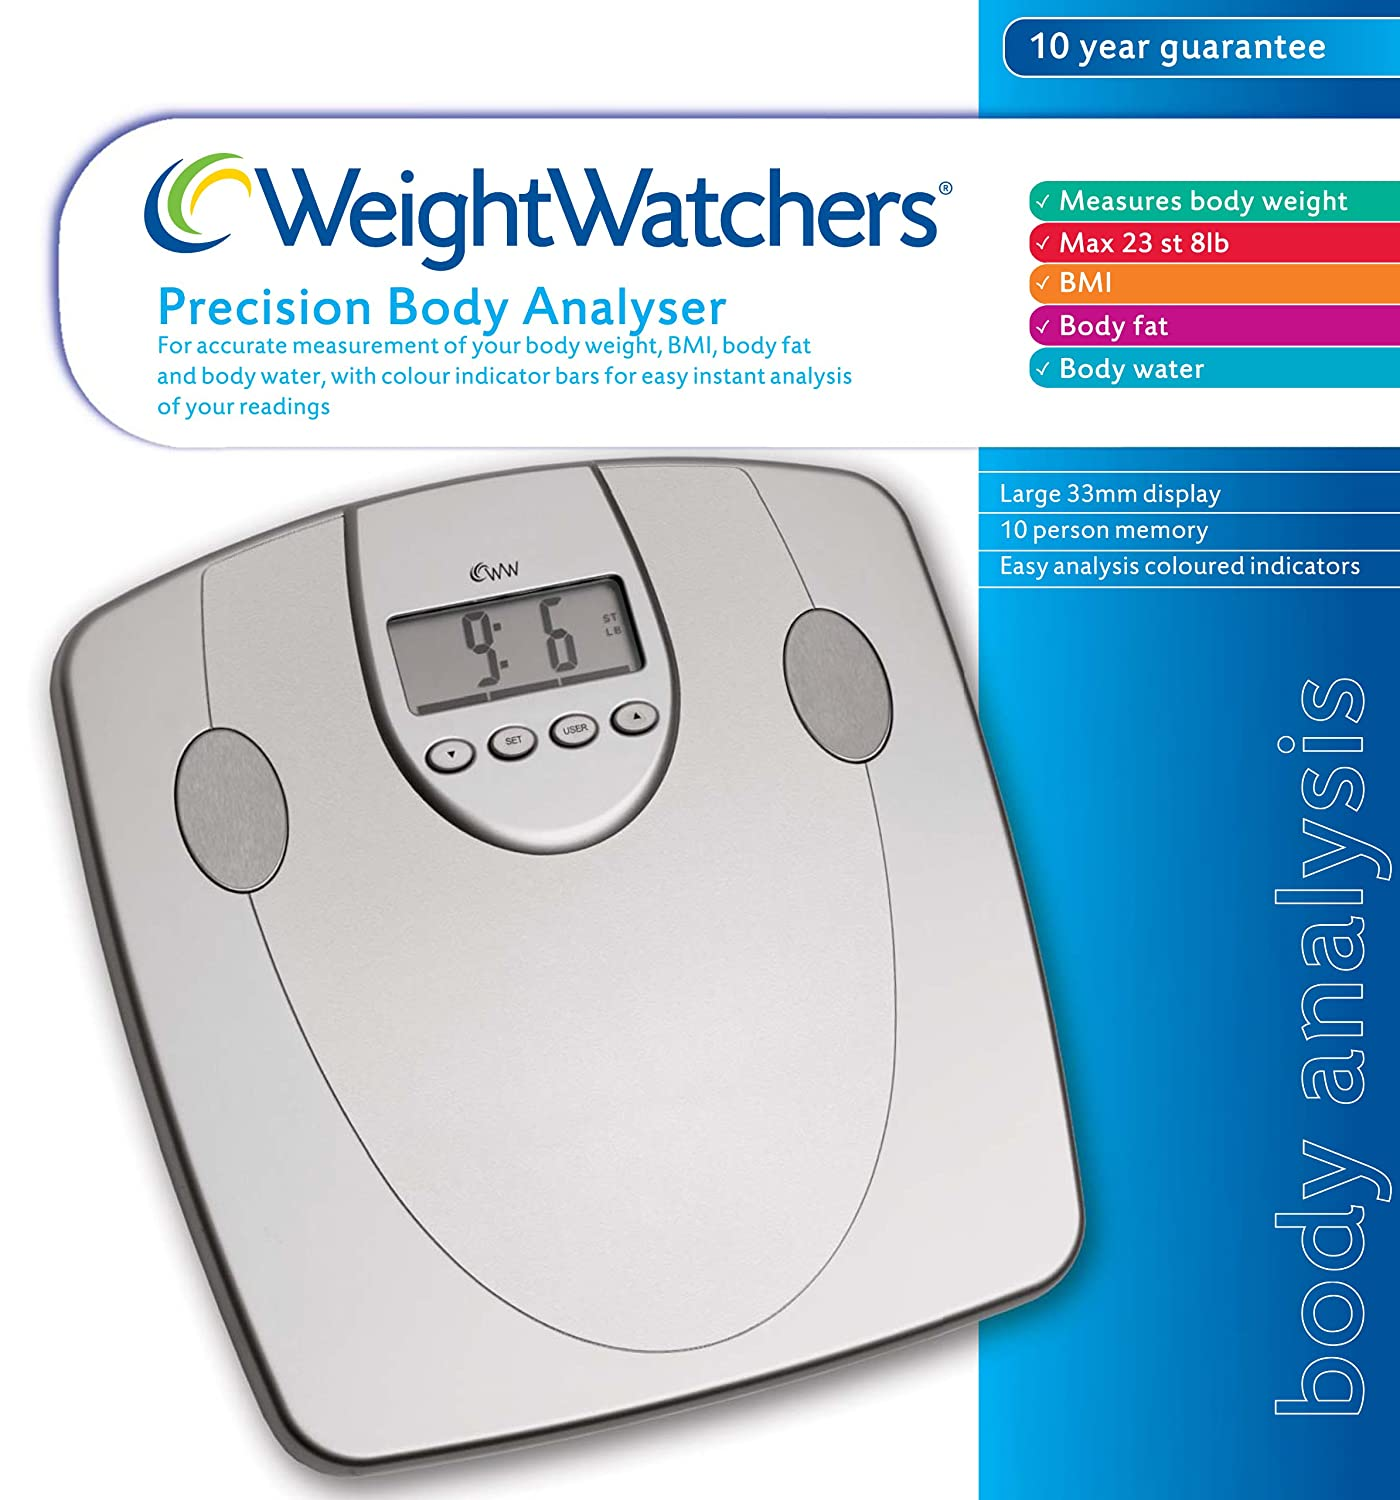 Weight Watchers 8991BU - Báscula de precisión: Amazon.es: Salud y cuidado personal